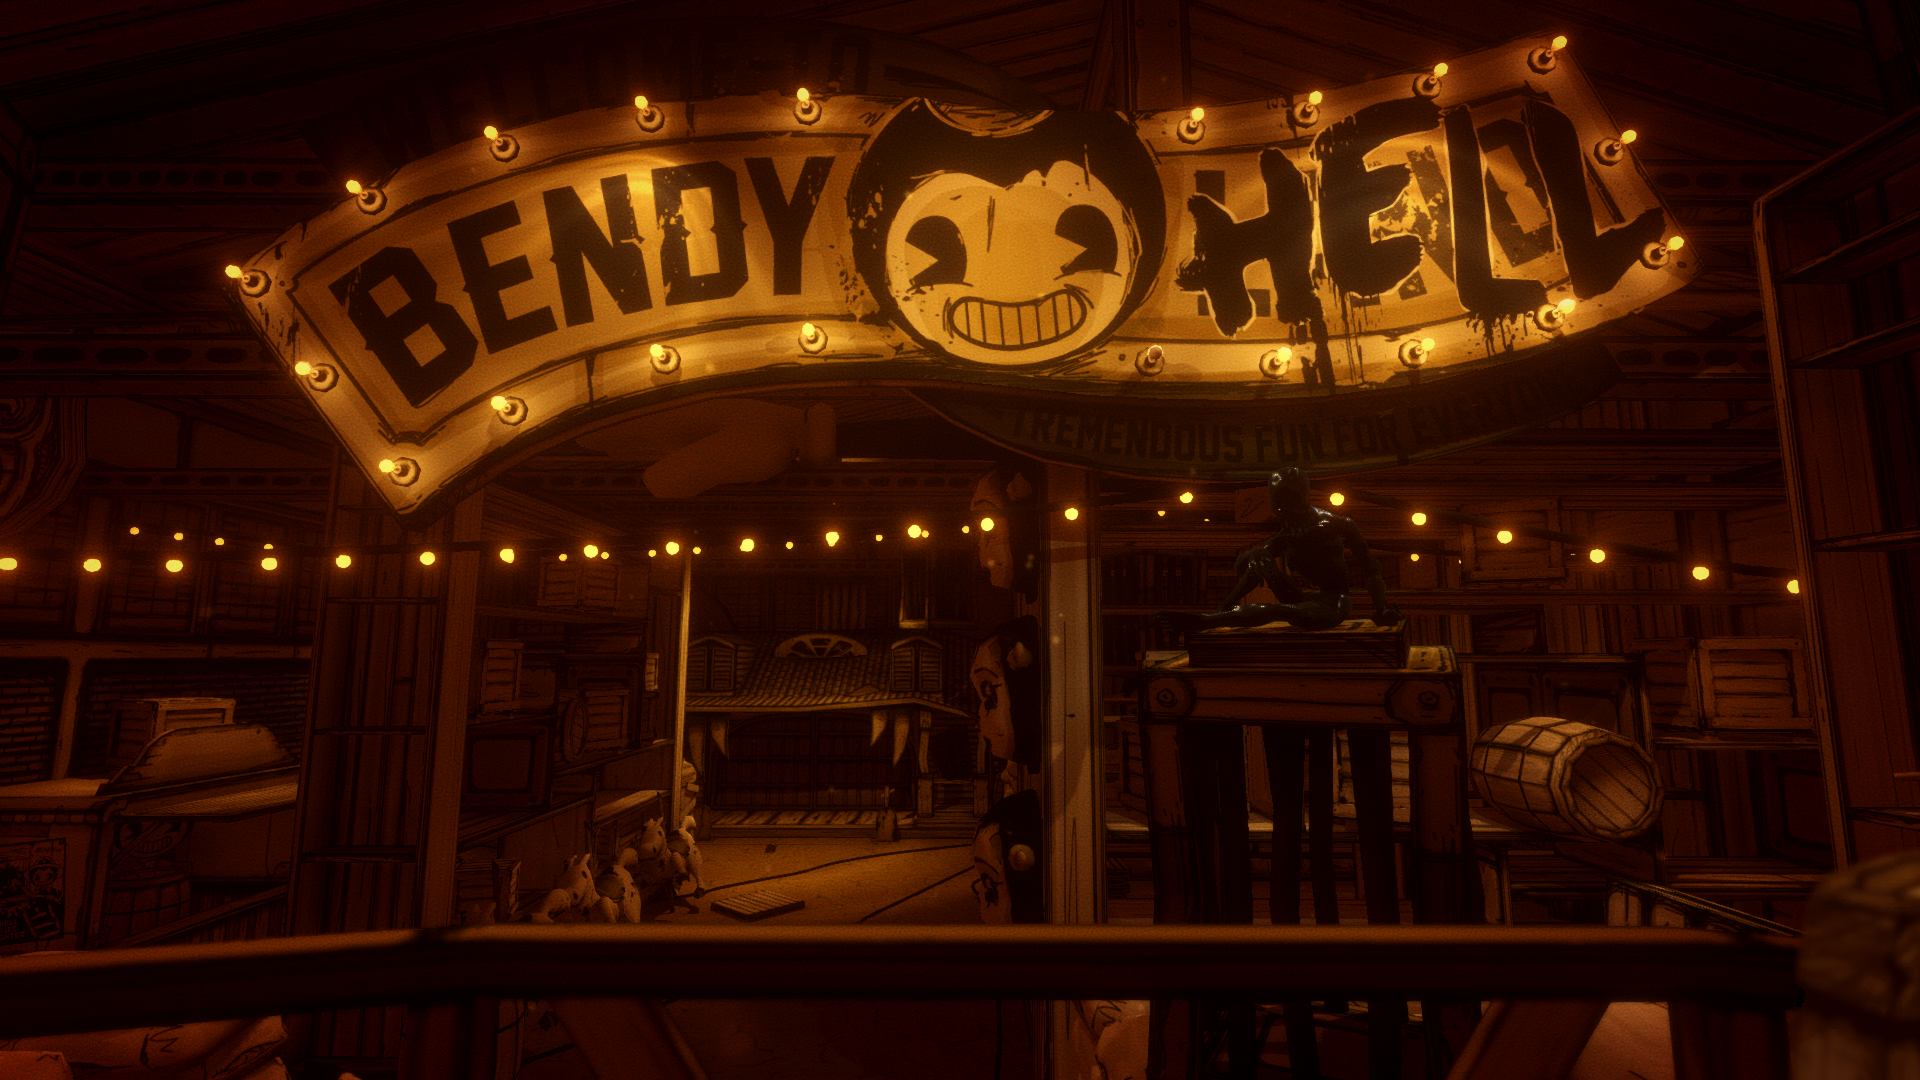 Welcome to Bendy Land